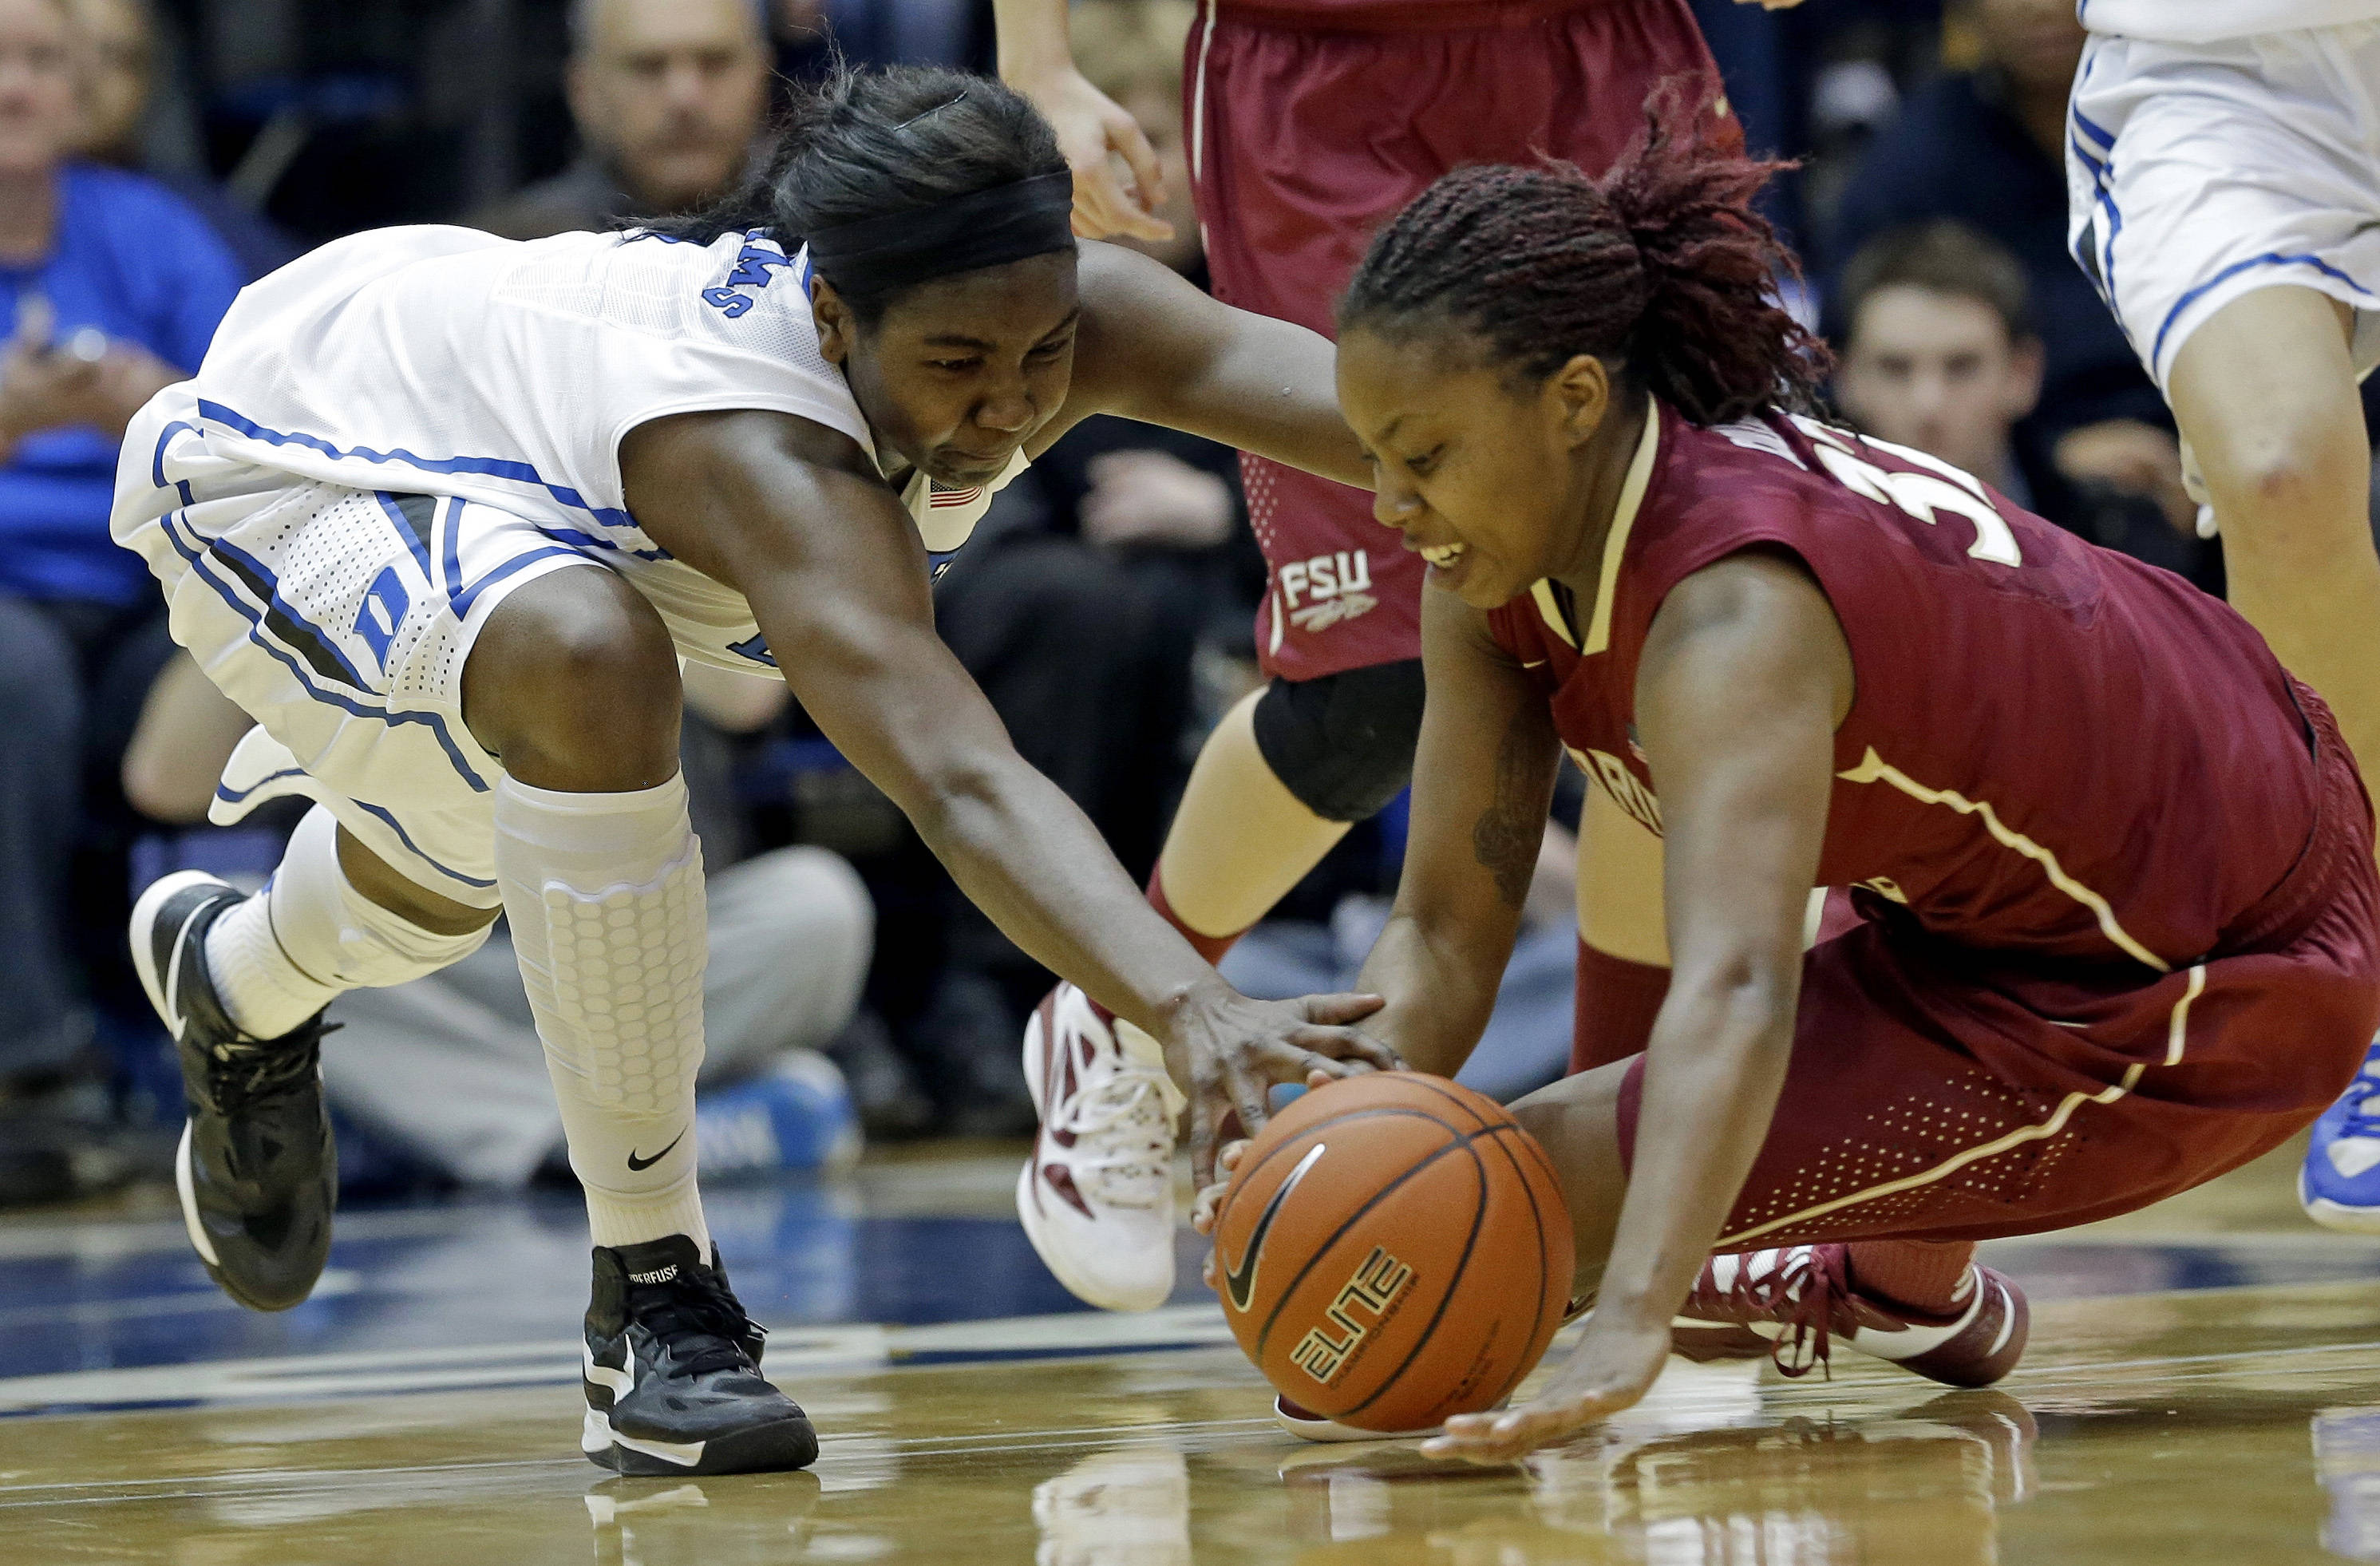 Duke's Elizabeth Williams, left, and Florida State's Lauren Coleman reach for the loose ball during the first half. (AP Photo/Gerry Broome)